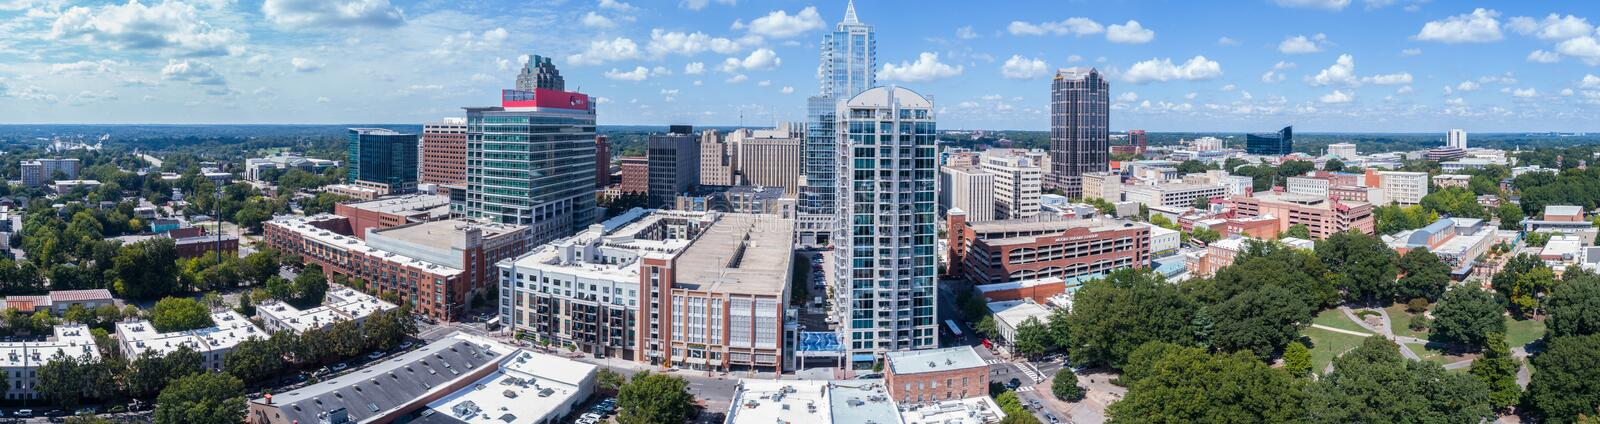 Drone Aerial Panorama Skyline of the City of Raleigh, NC stock image